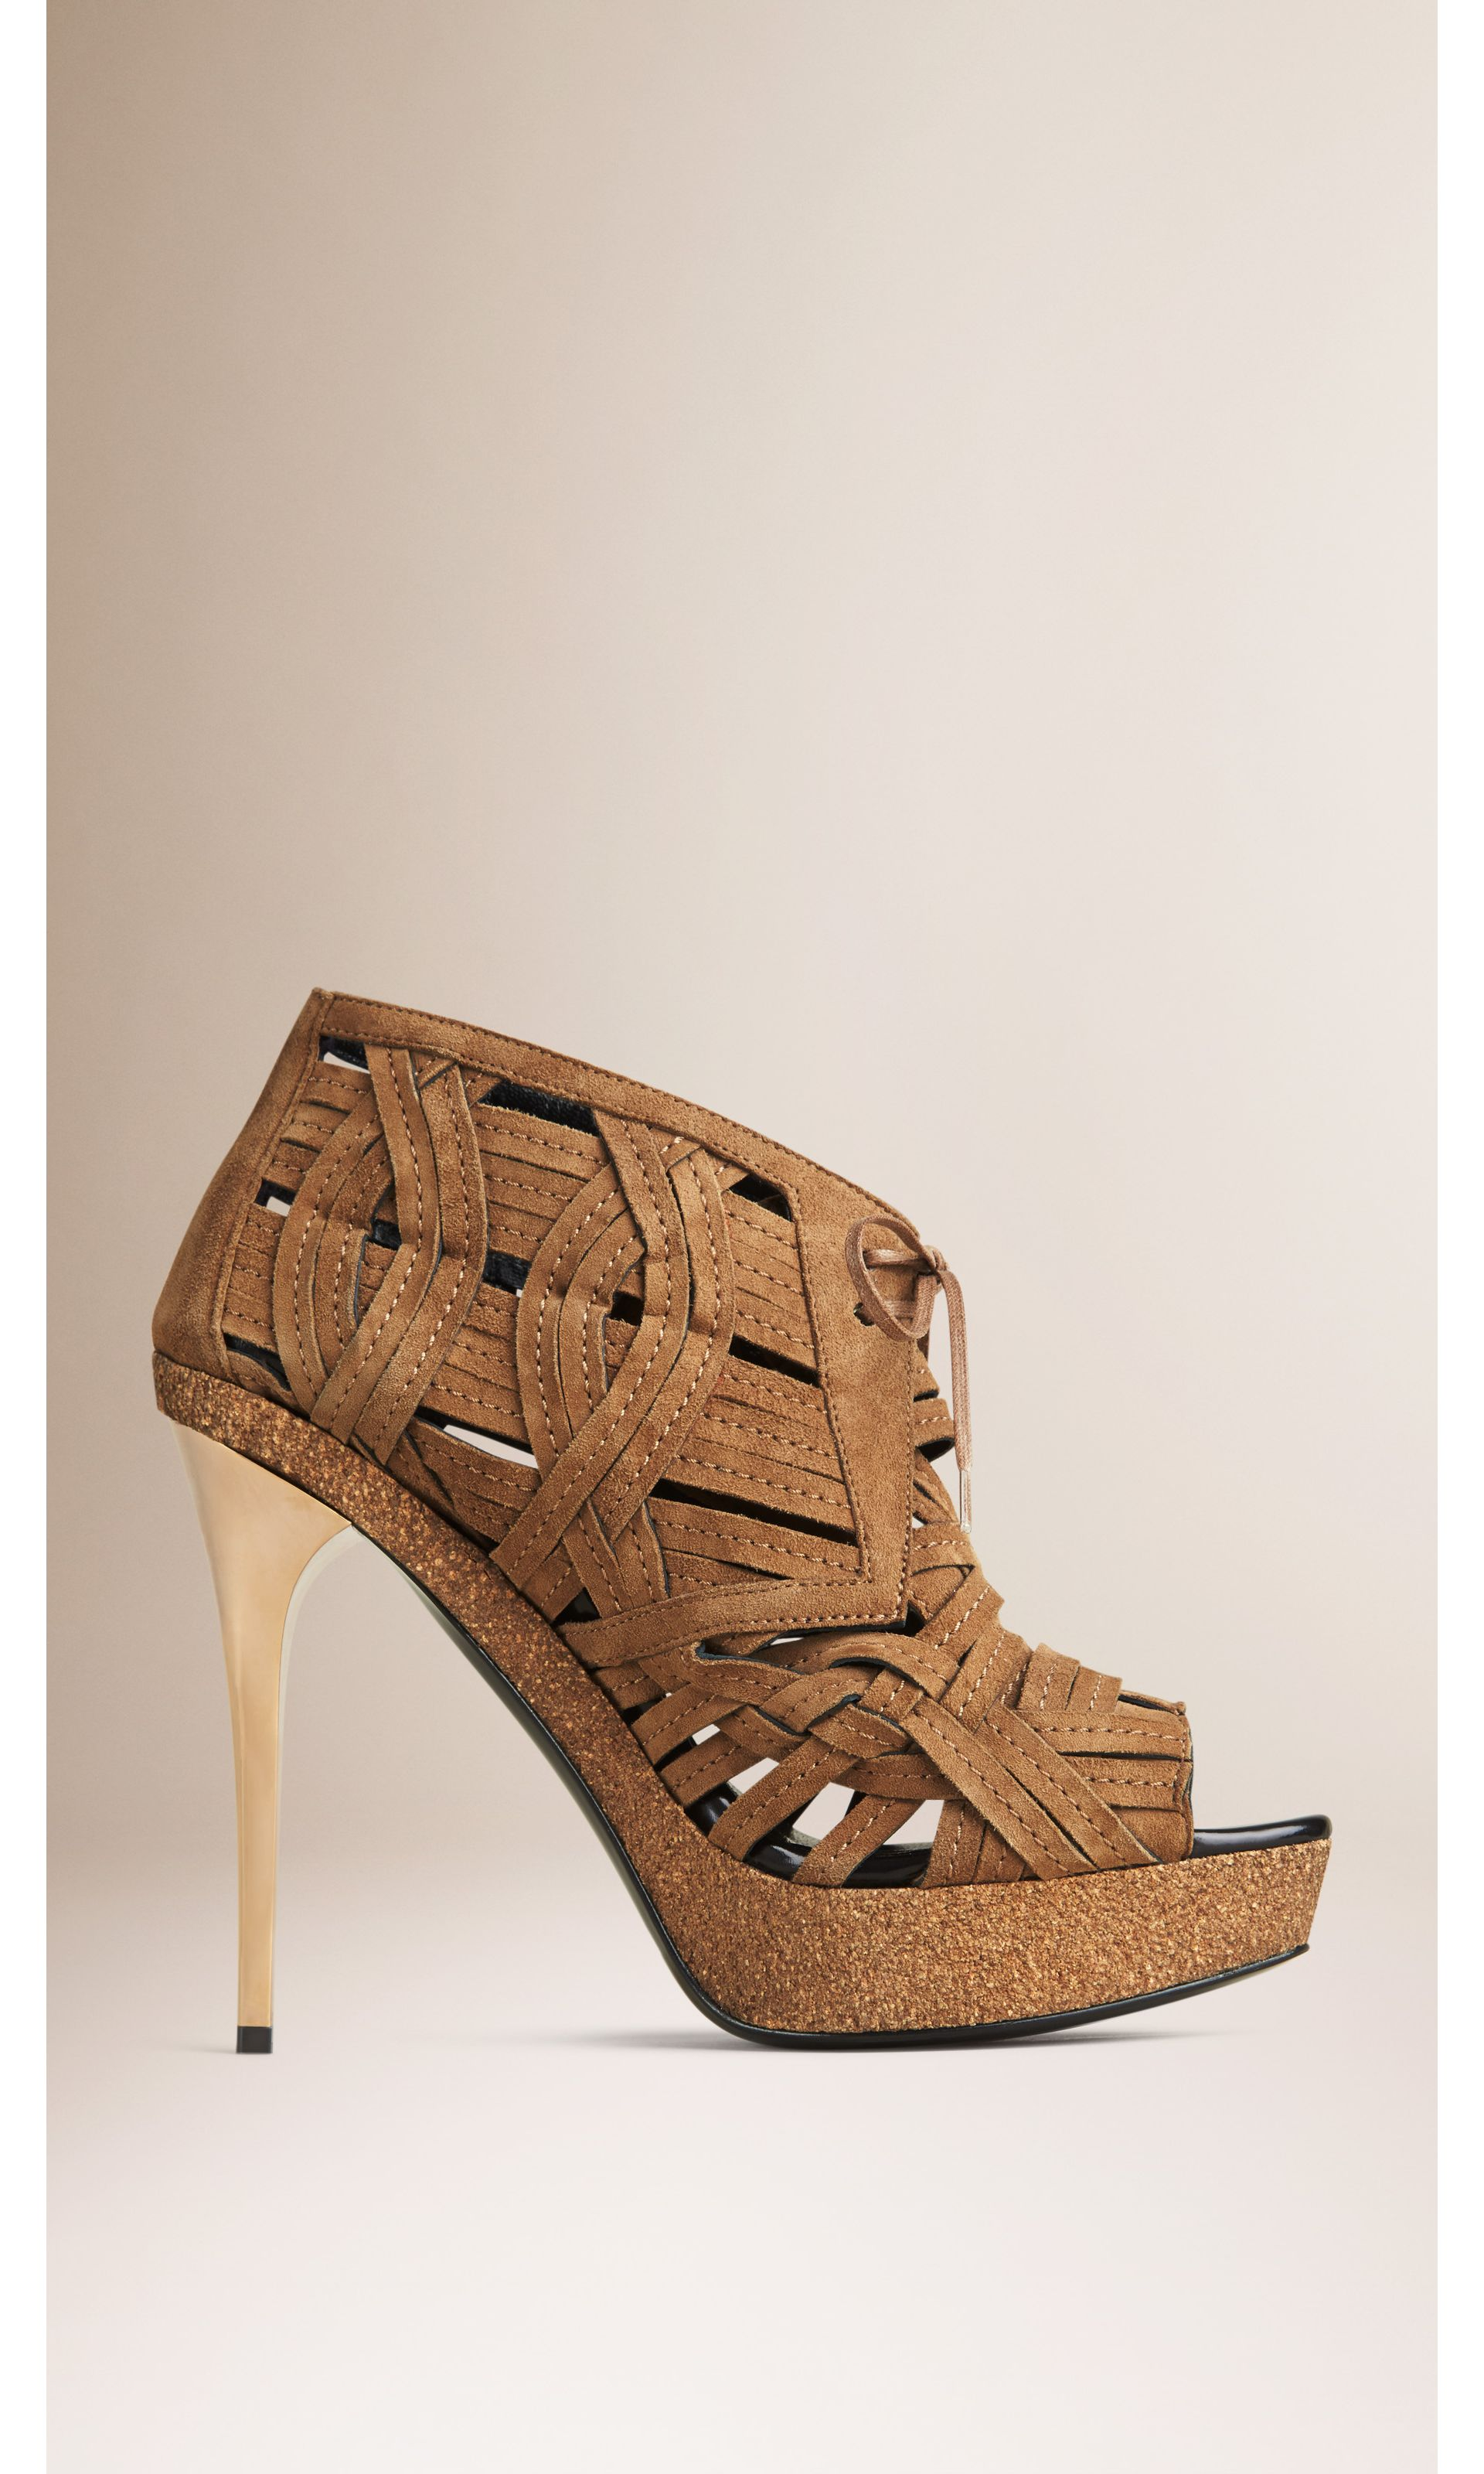 Woven Suede Ankle Boots in Walnut Brown - Women | Burberry United States - gallery image 2